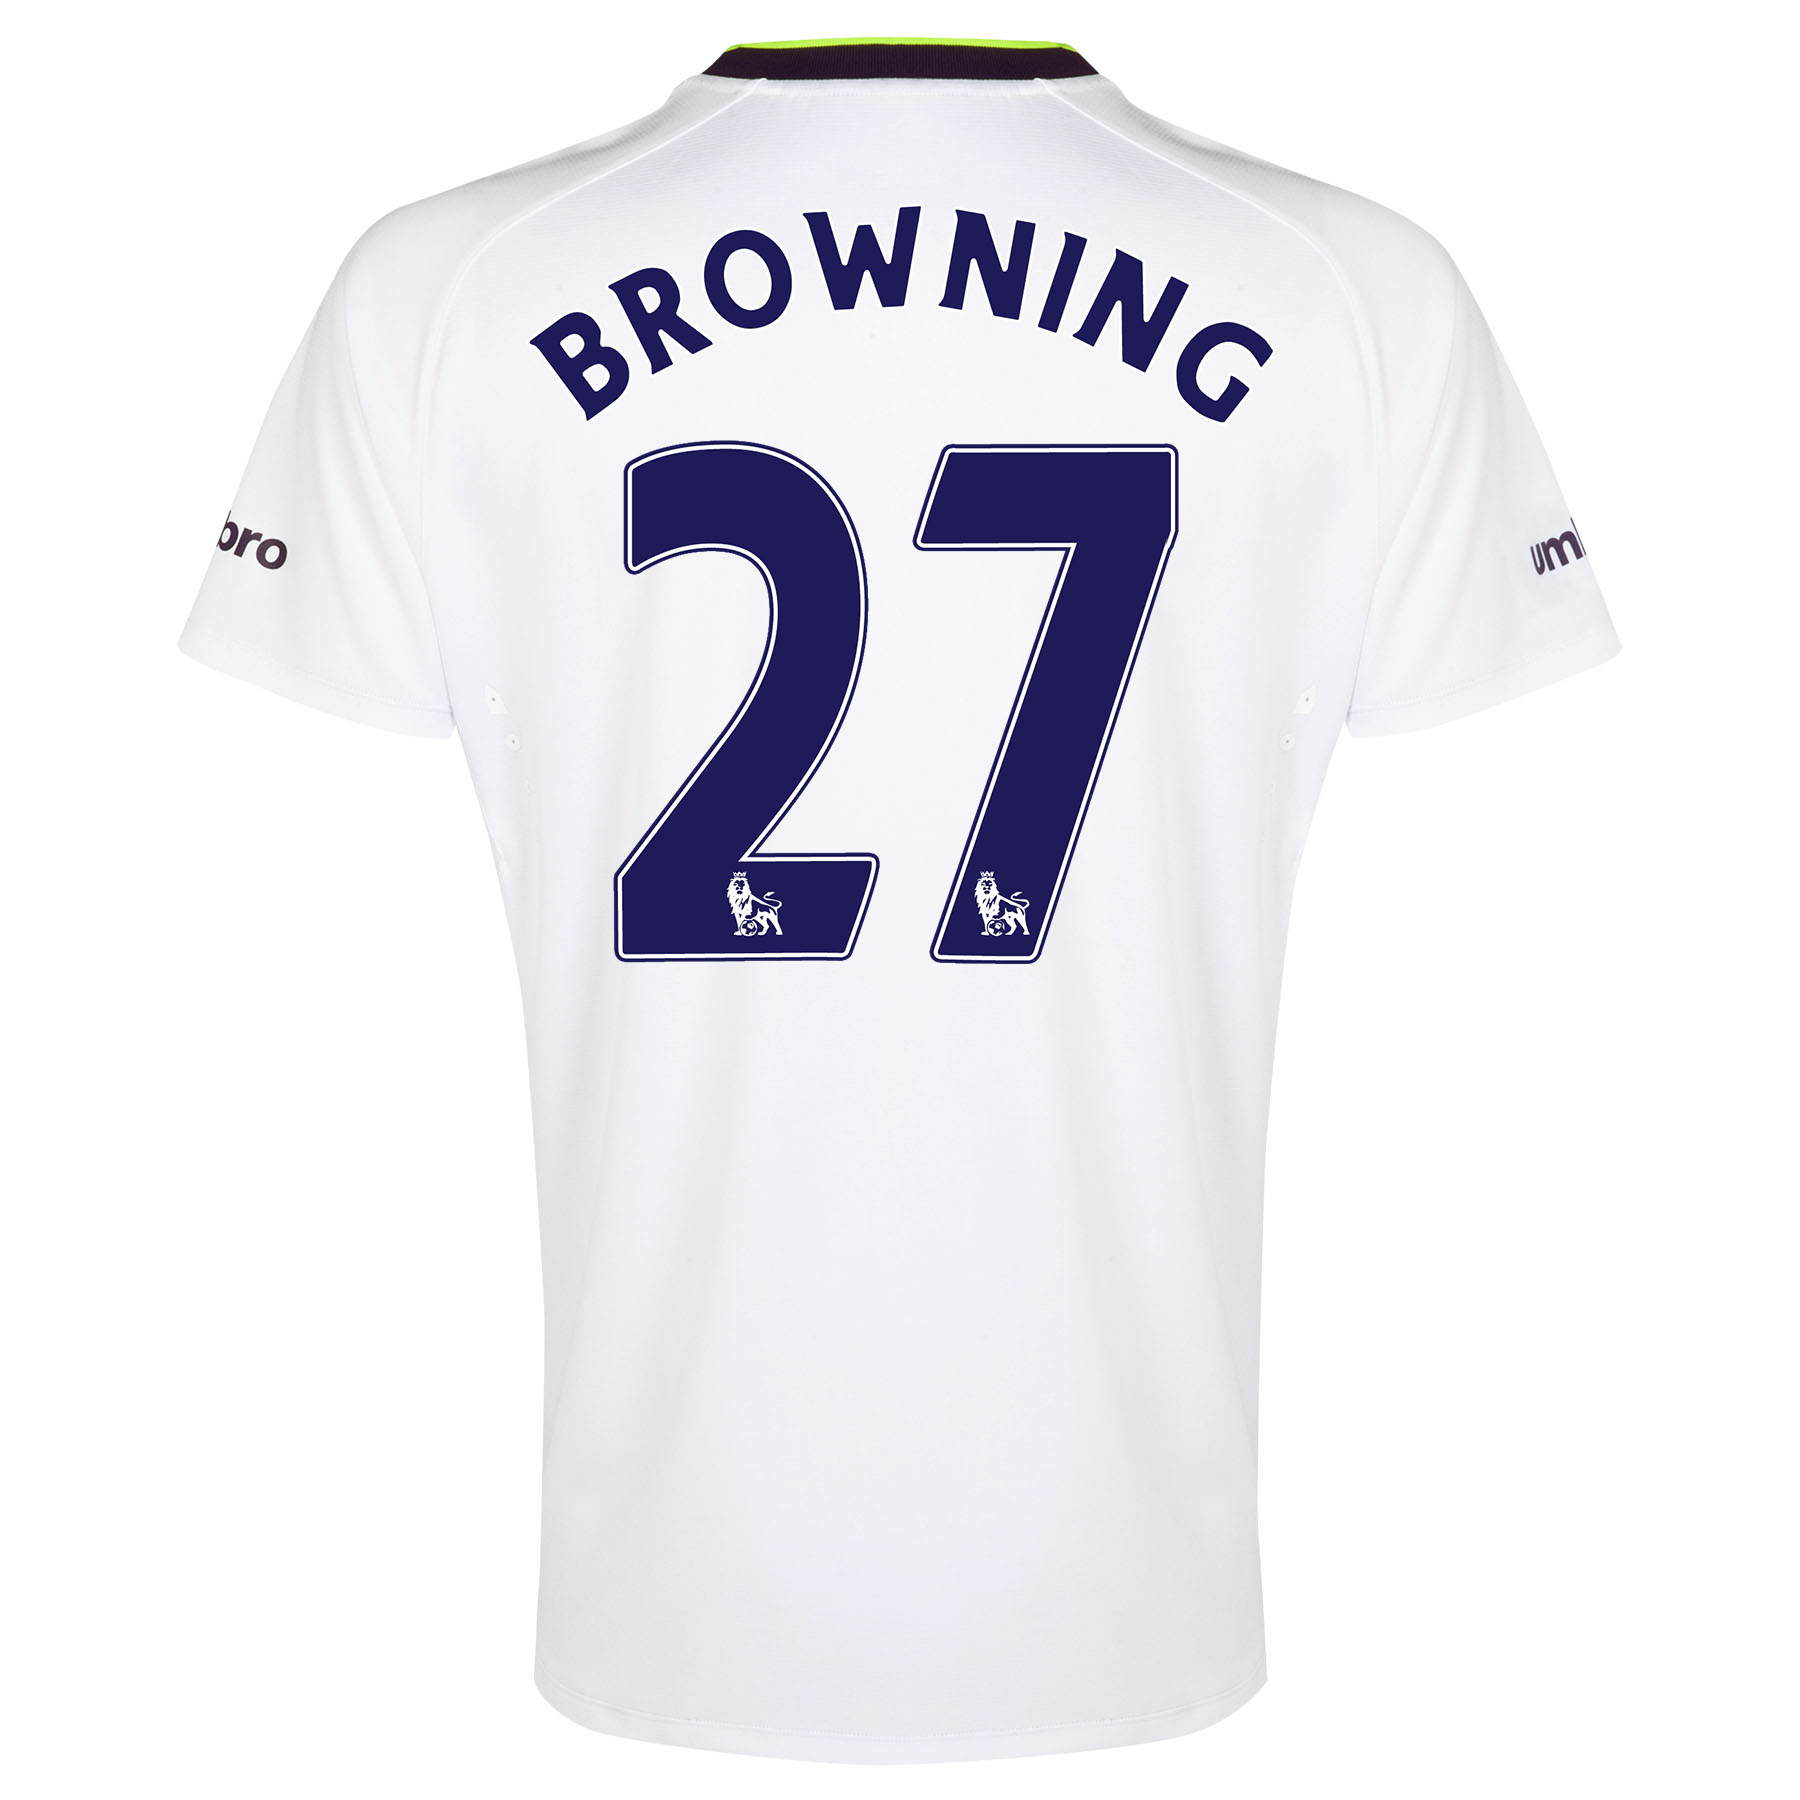 Everton SS 3rd Shirt  2014/15 with Browning 36 printing